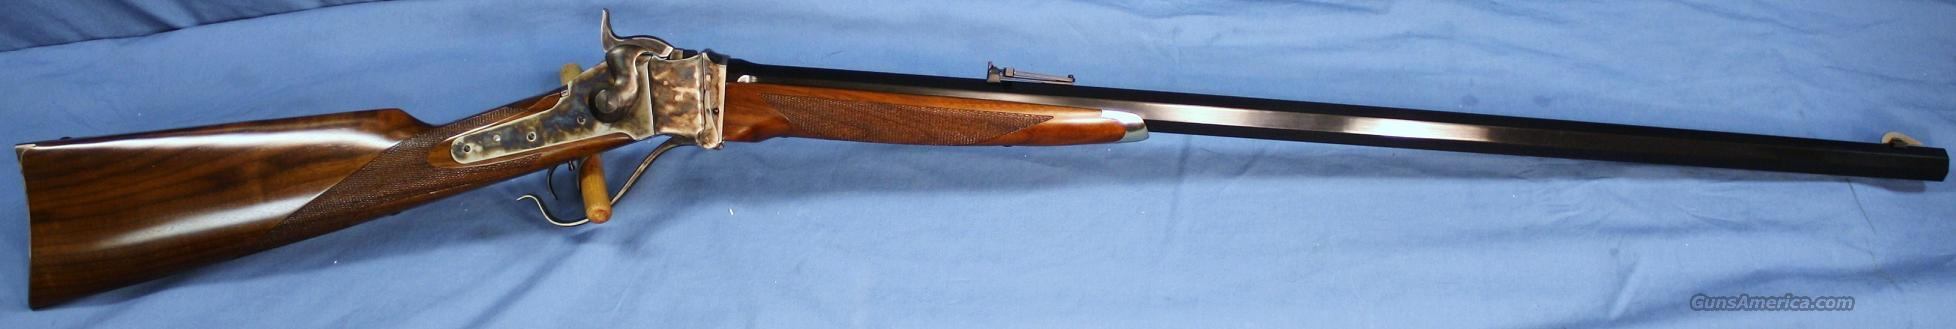 Cimarron Pedersoli 1874 Sharps Billy Dixon Single Shot Rifle 45-70 Govt  Guns > Rifles > Cimmaron Rifles > Single Shot